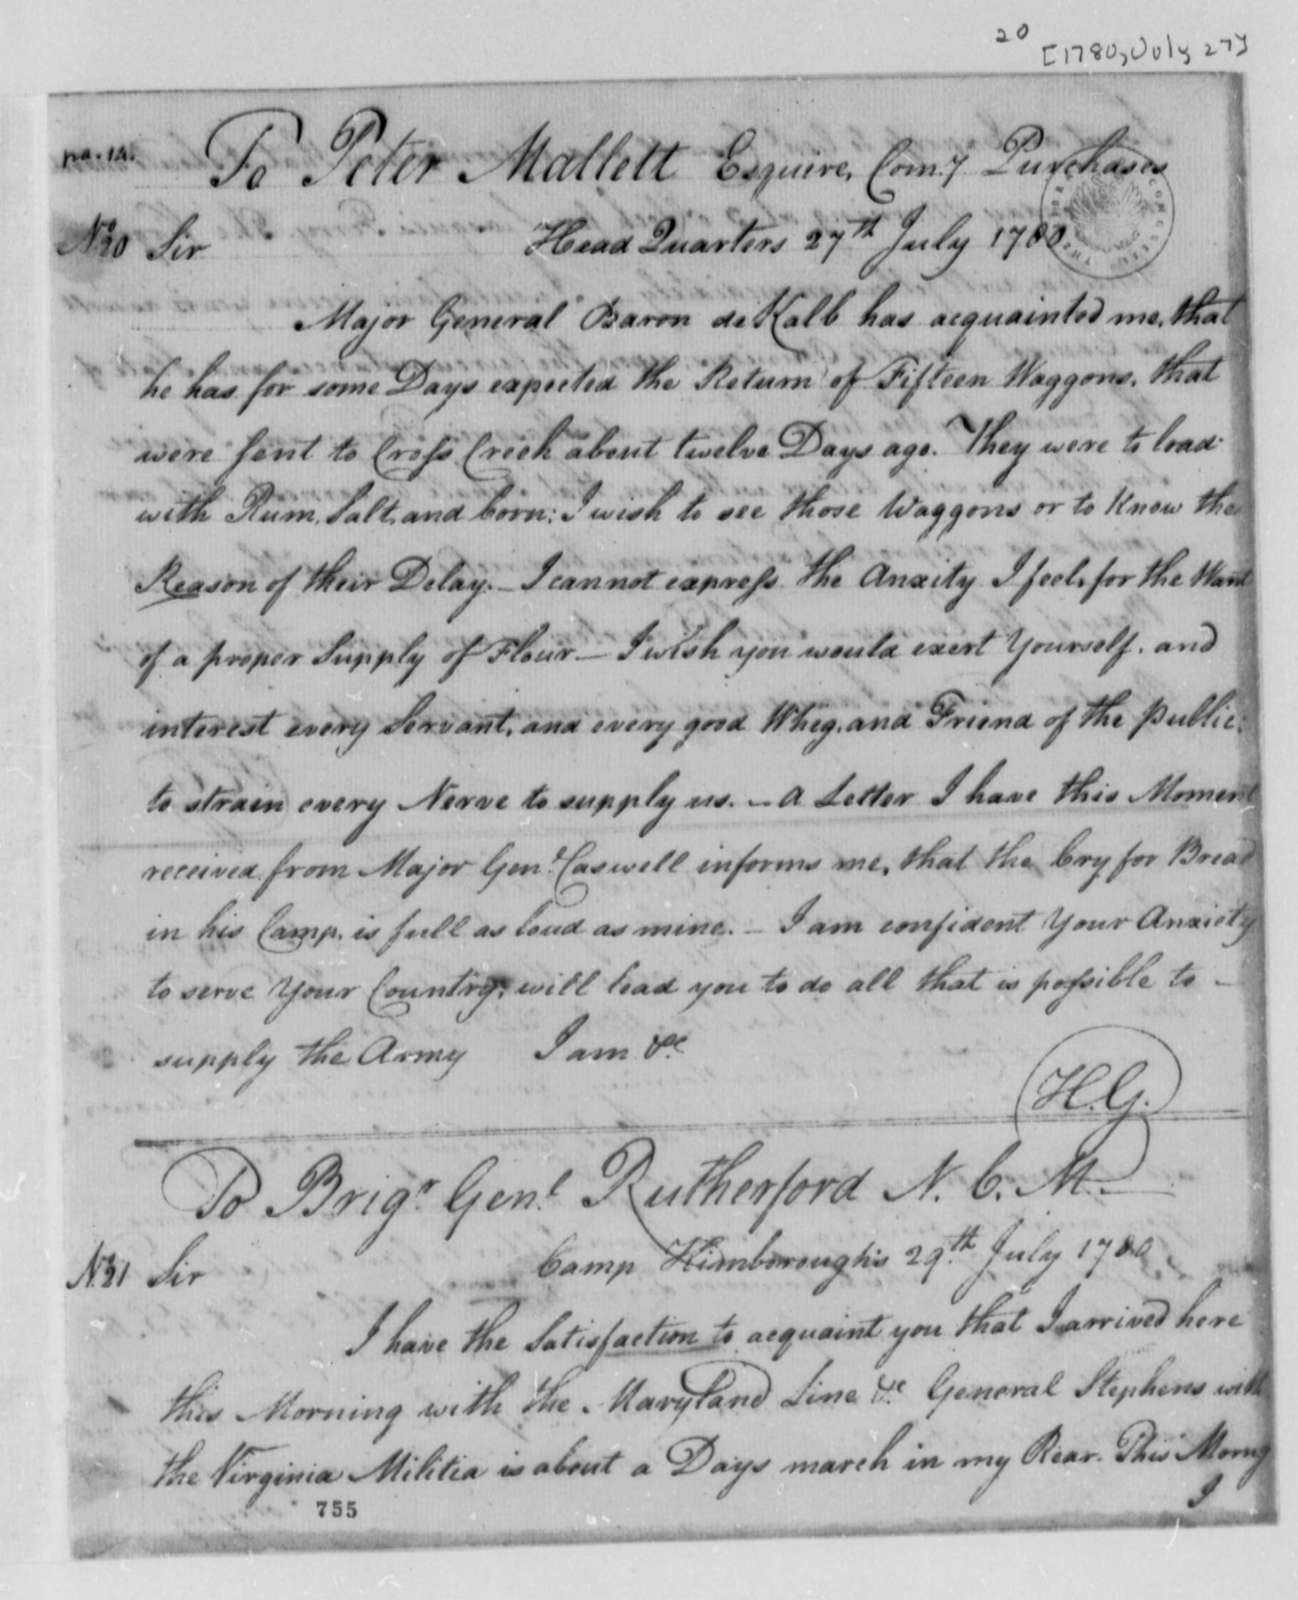 Horatio Gates to Peter Mallett, July 27, 1780